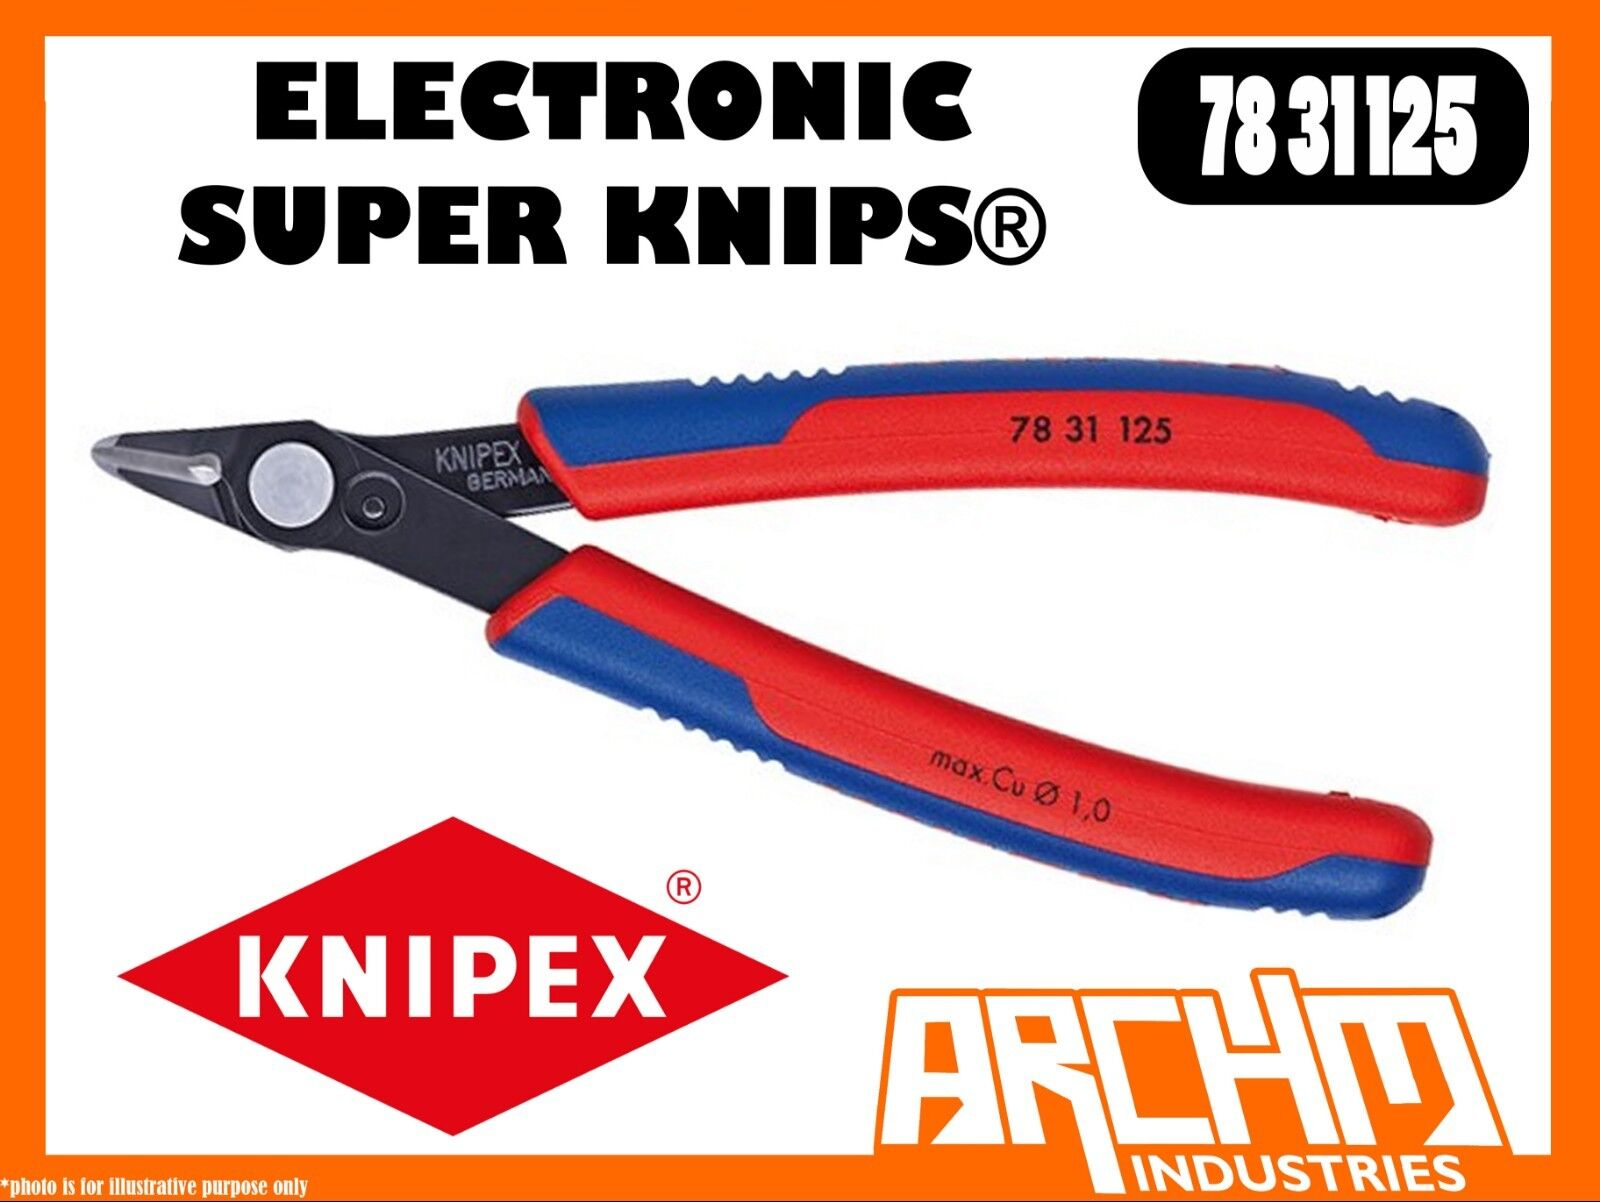 KNIPEX 7831125 - ELECTRONIC SUPER KNIPS® 125MM - PLIERS CUTTING EDGES BURNISHED